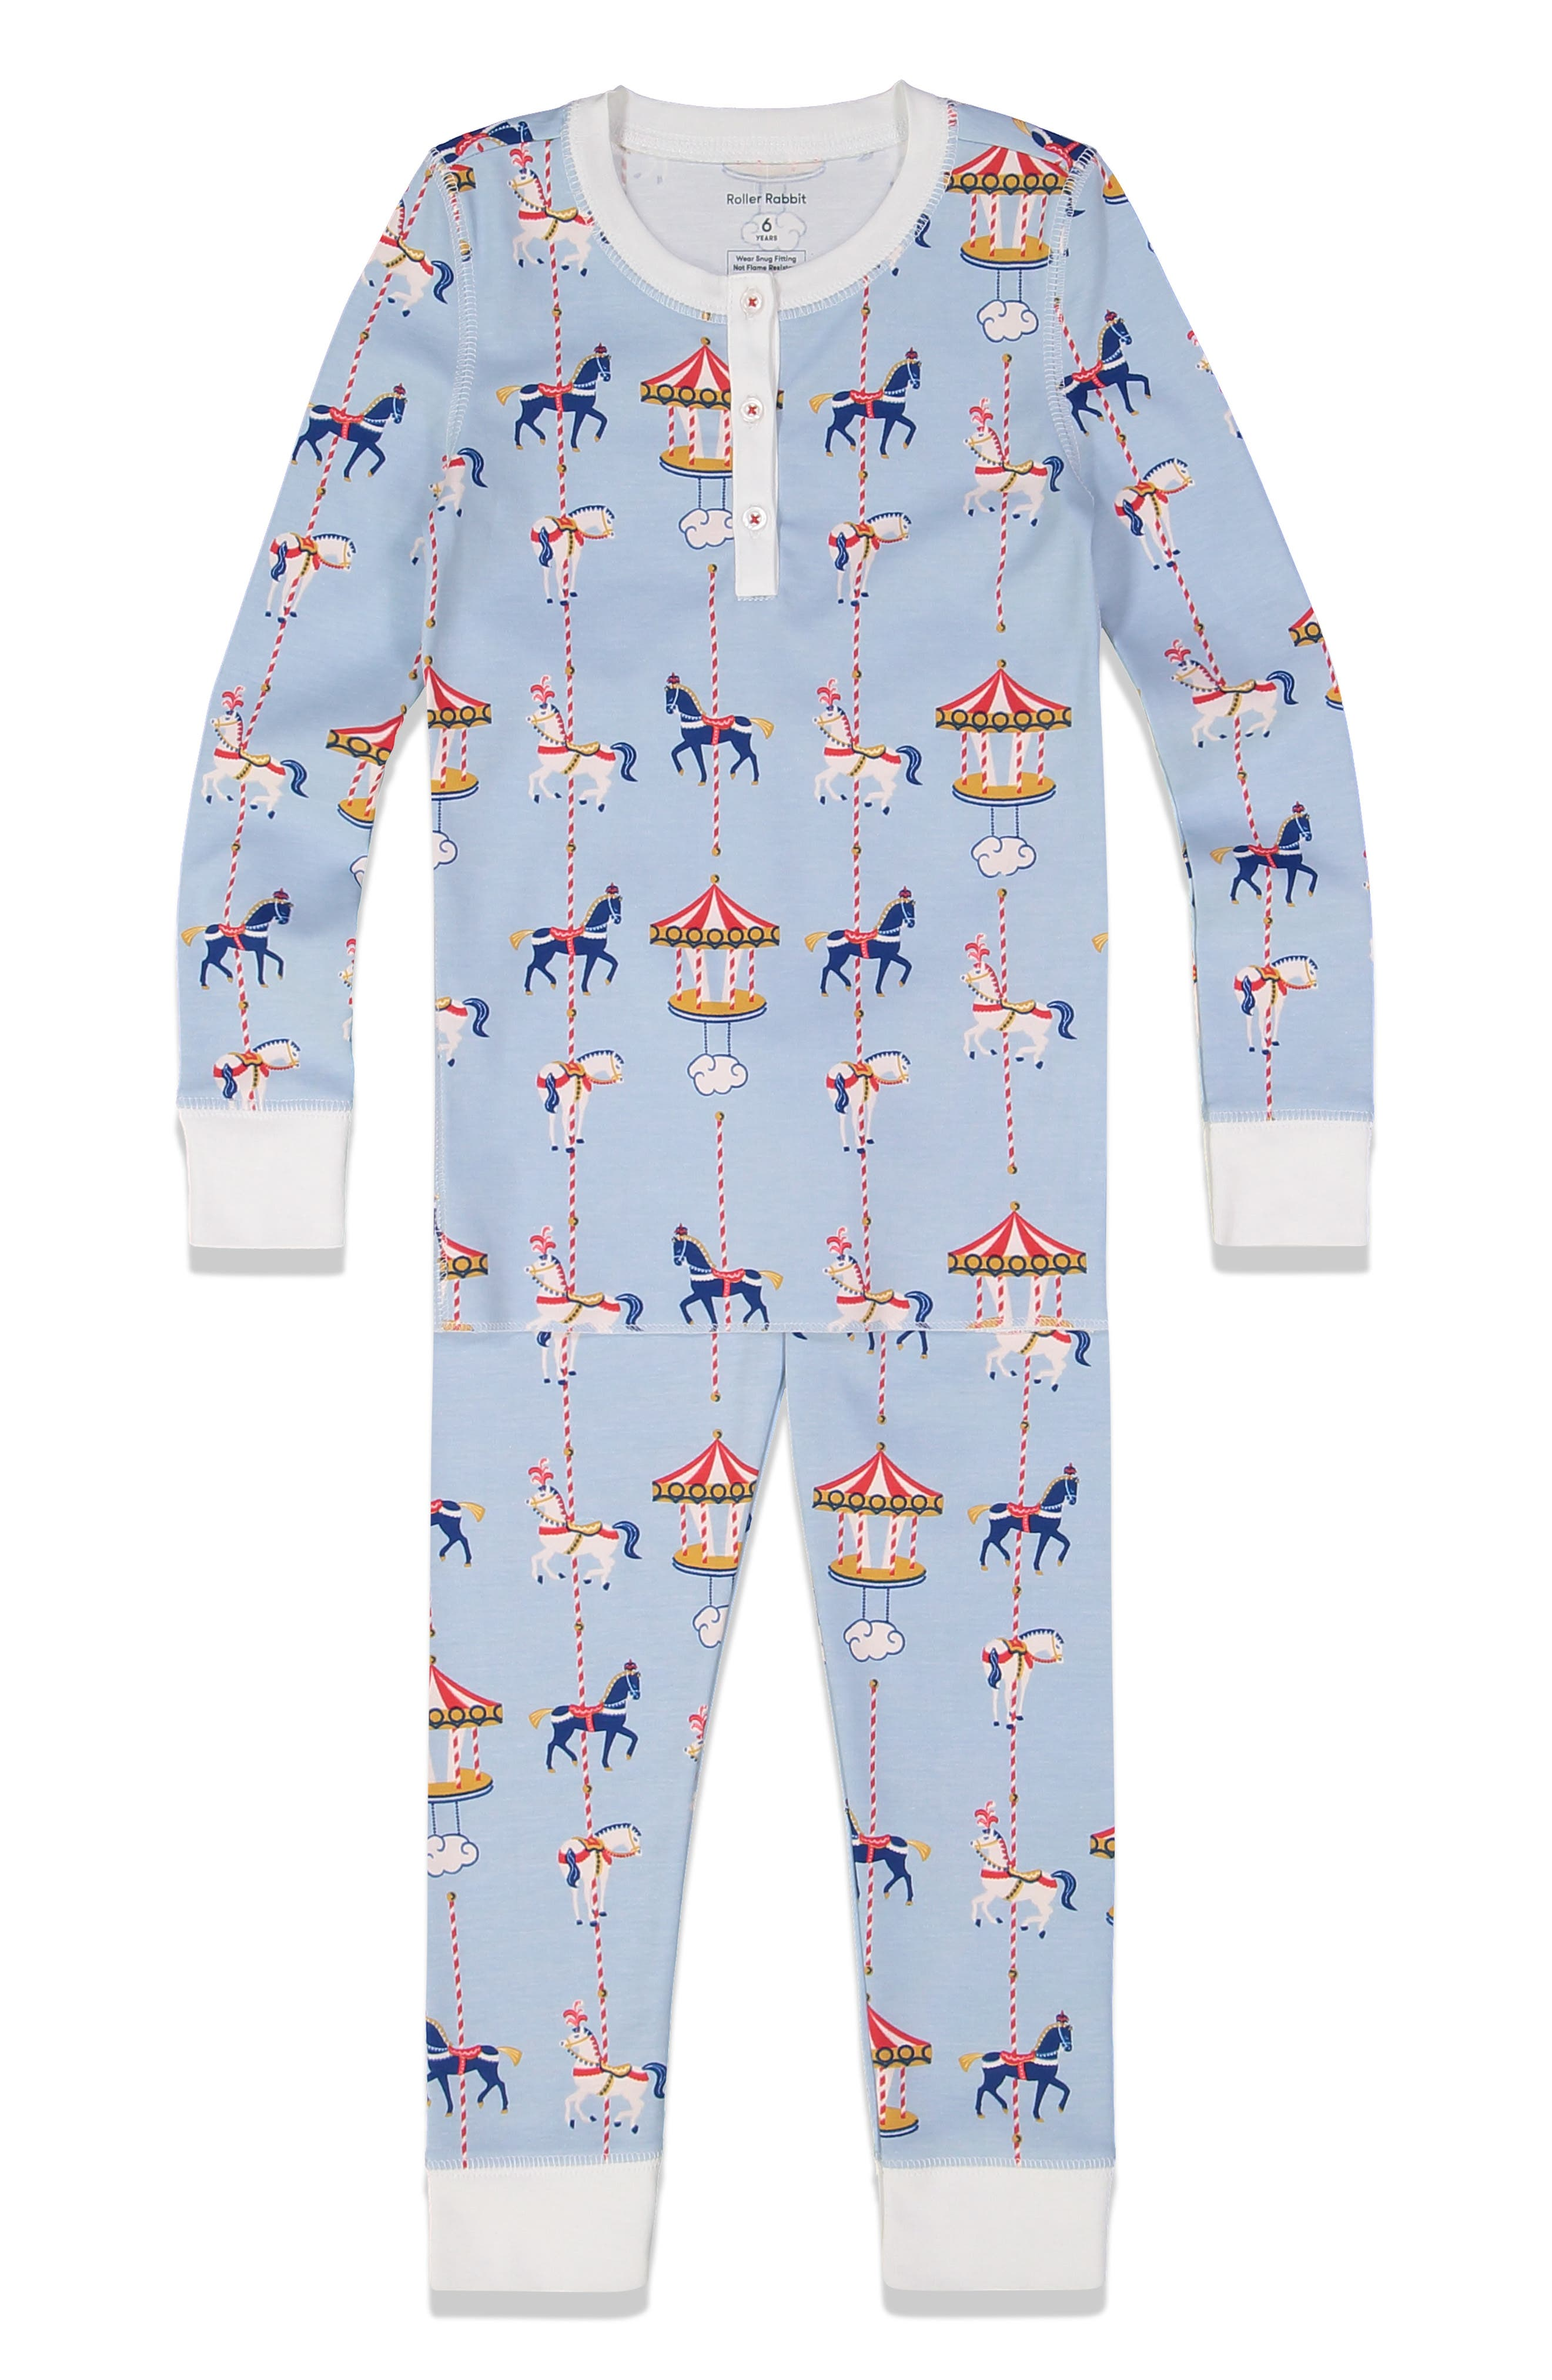 Toddler Roller Rabbit Carousel Fitted Two-Piece Pajamas, Y - Blue